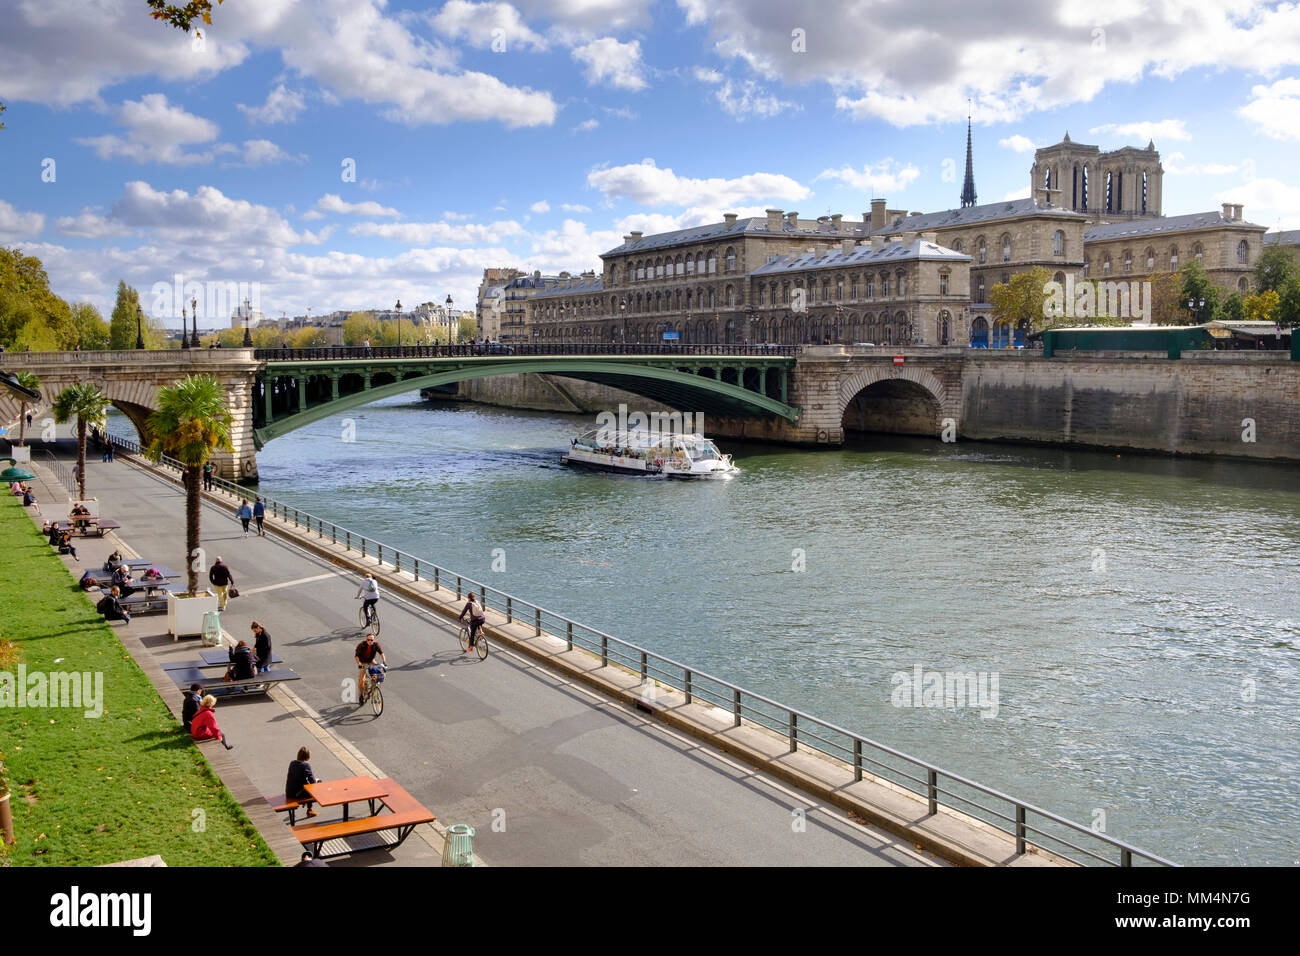 Aerial view of Boat and Pont Notre-Dame with Voie George Pompidou pedestrian and cycling path, 4th arr, Paris, France - Stock Image